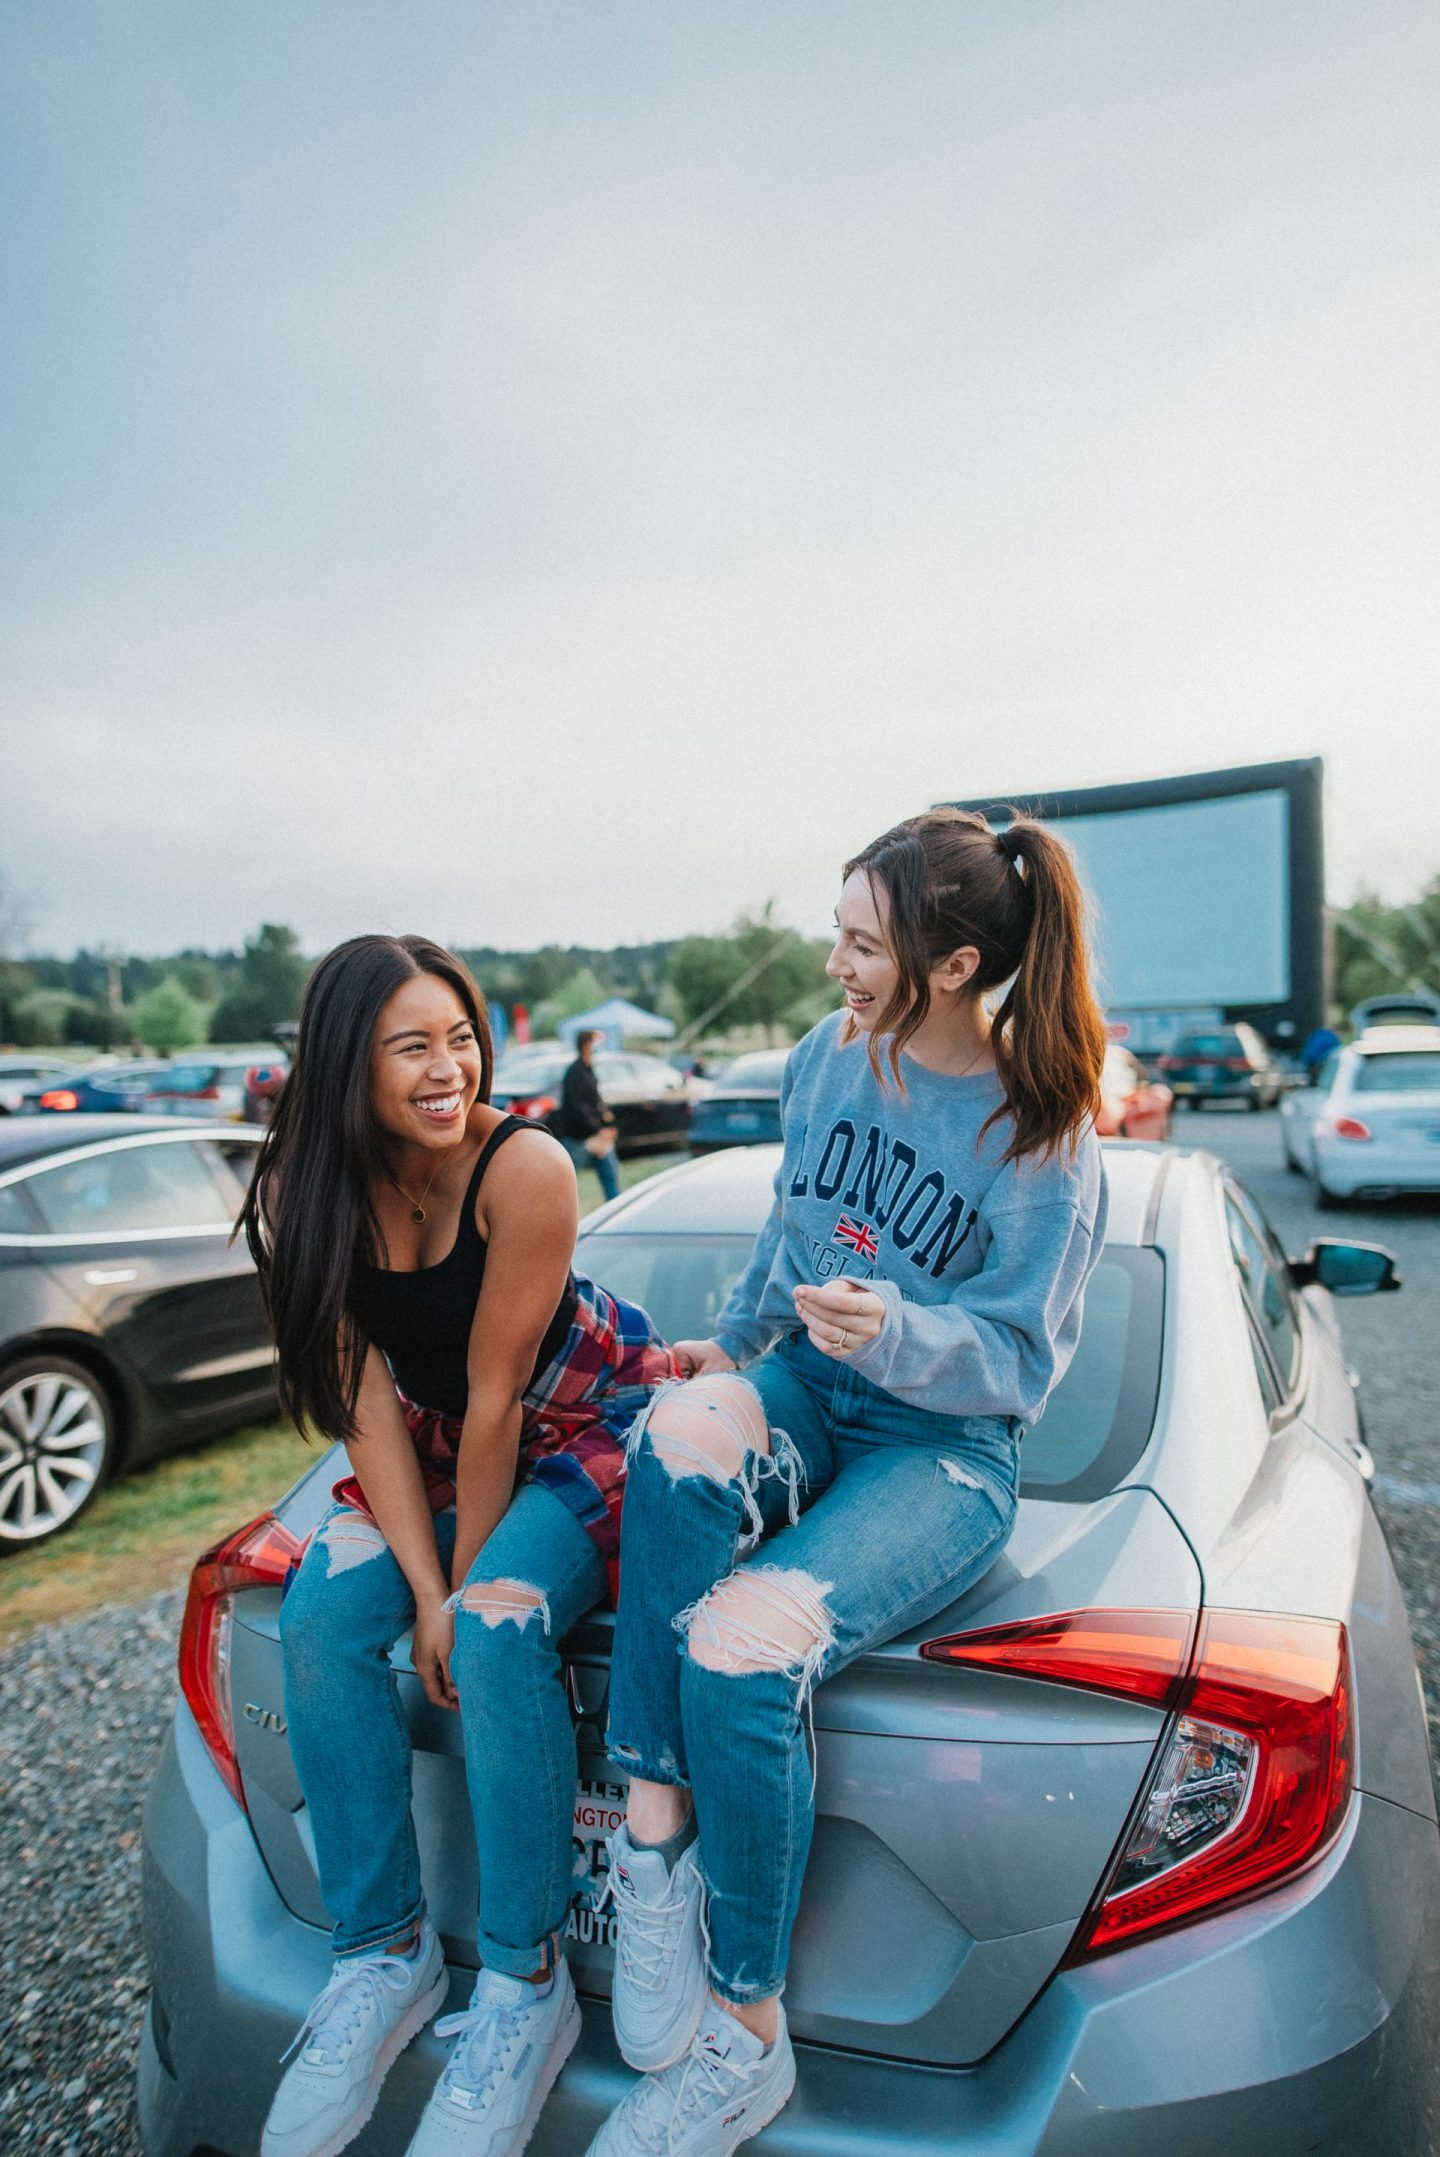 summer posing ideas with your BFF - best friend photo shoot ideas - summer photo shoots - drive-in movie theater - image copyright @emmasedition - www.emmasedition.com